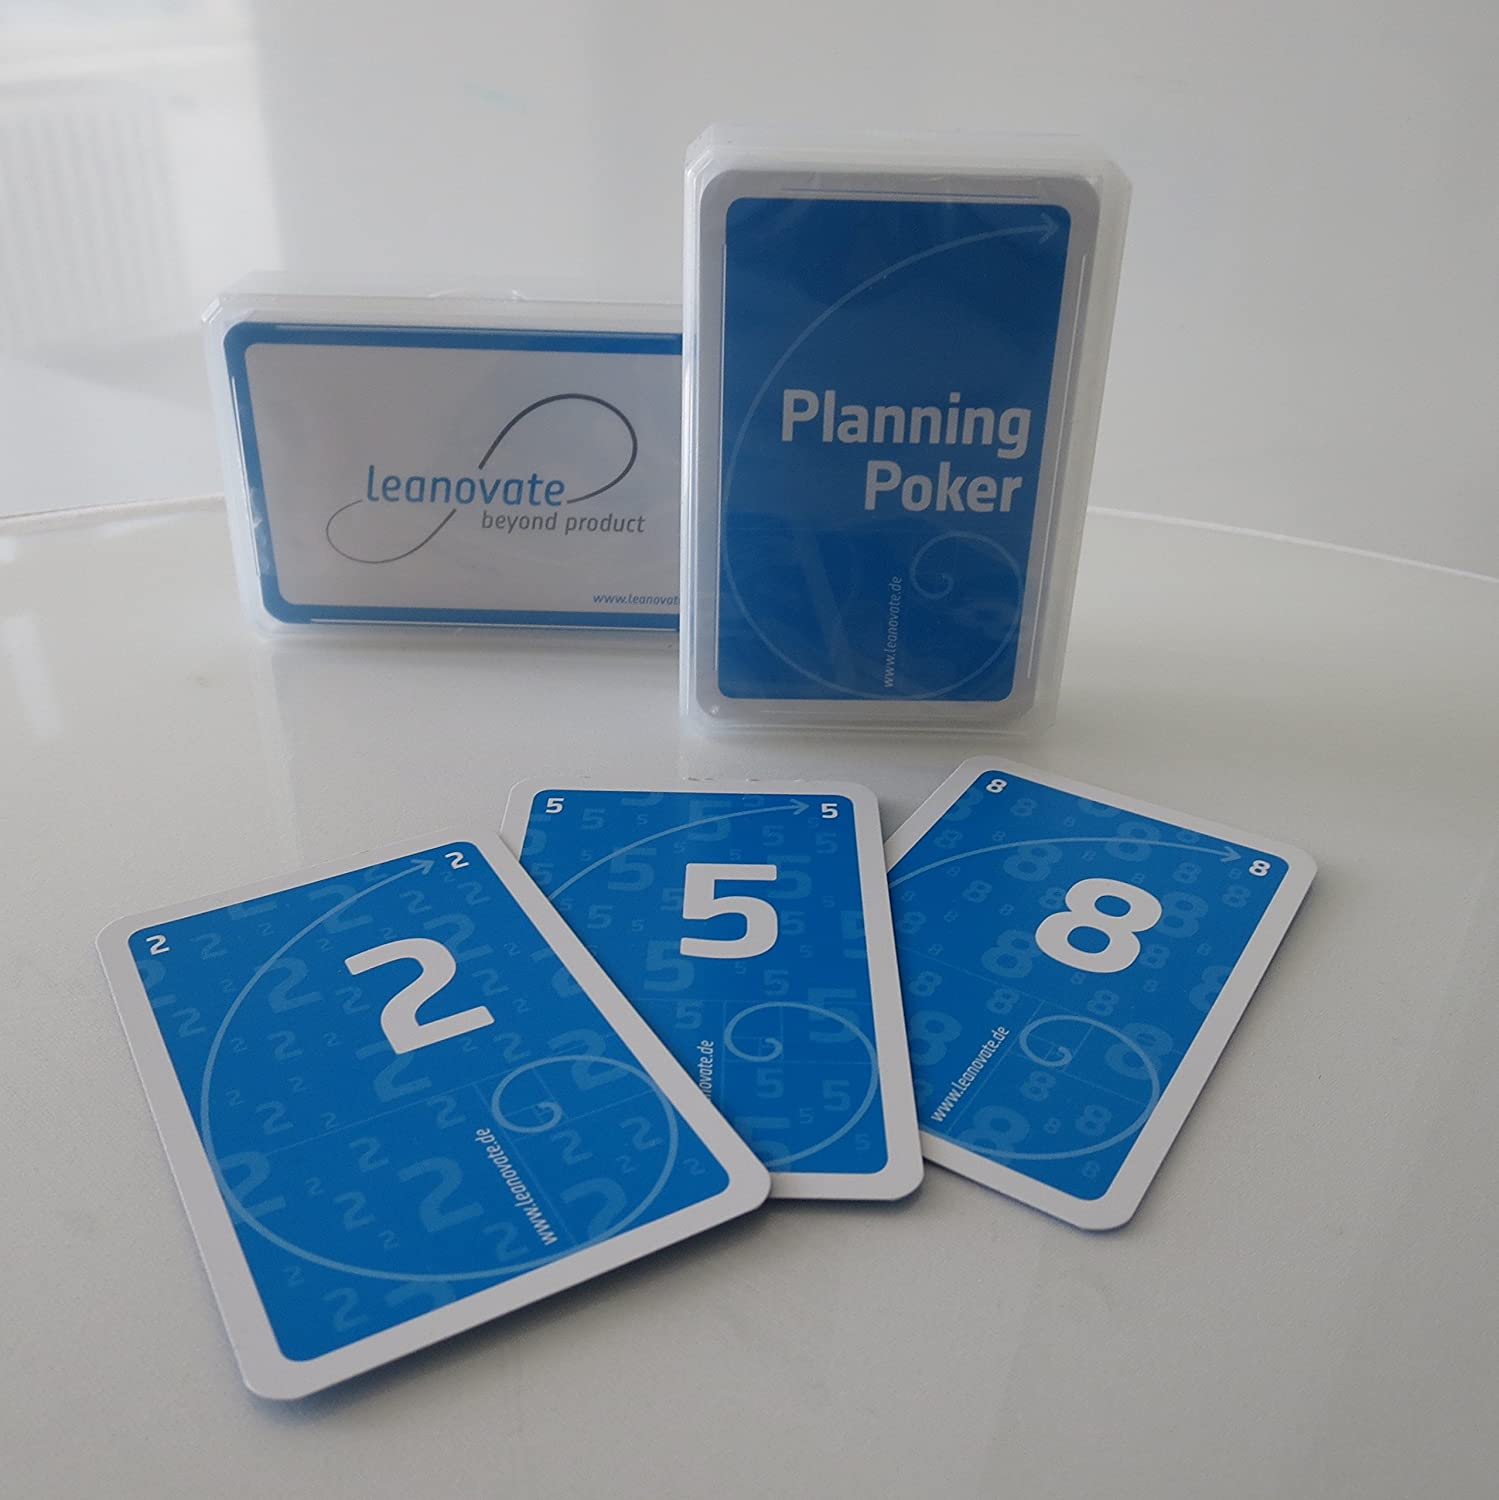 Planning Poker® Set di schede leanovate GmbH